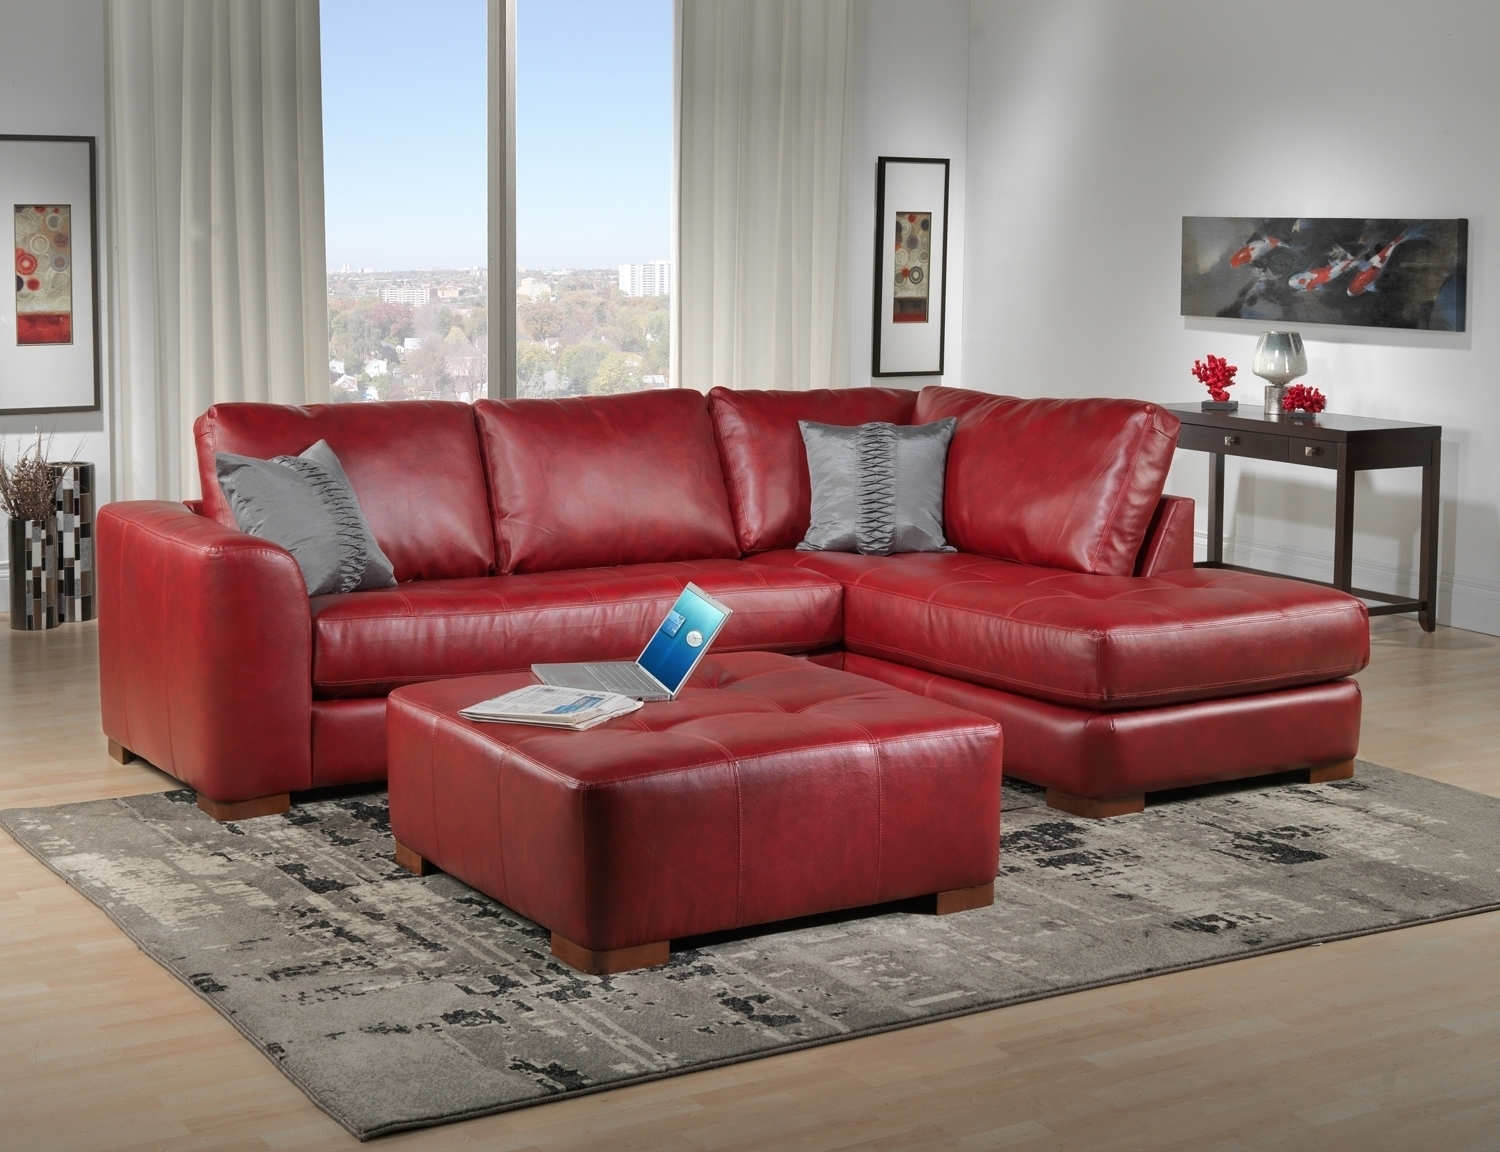 Decorating Ideas Living Room Red Leather Sofa | Living Room Ideas for Red Leather Couches for Living Room (Image 3 of 15)